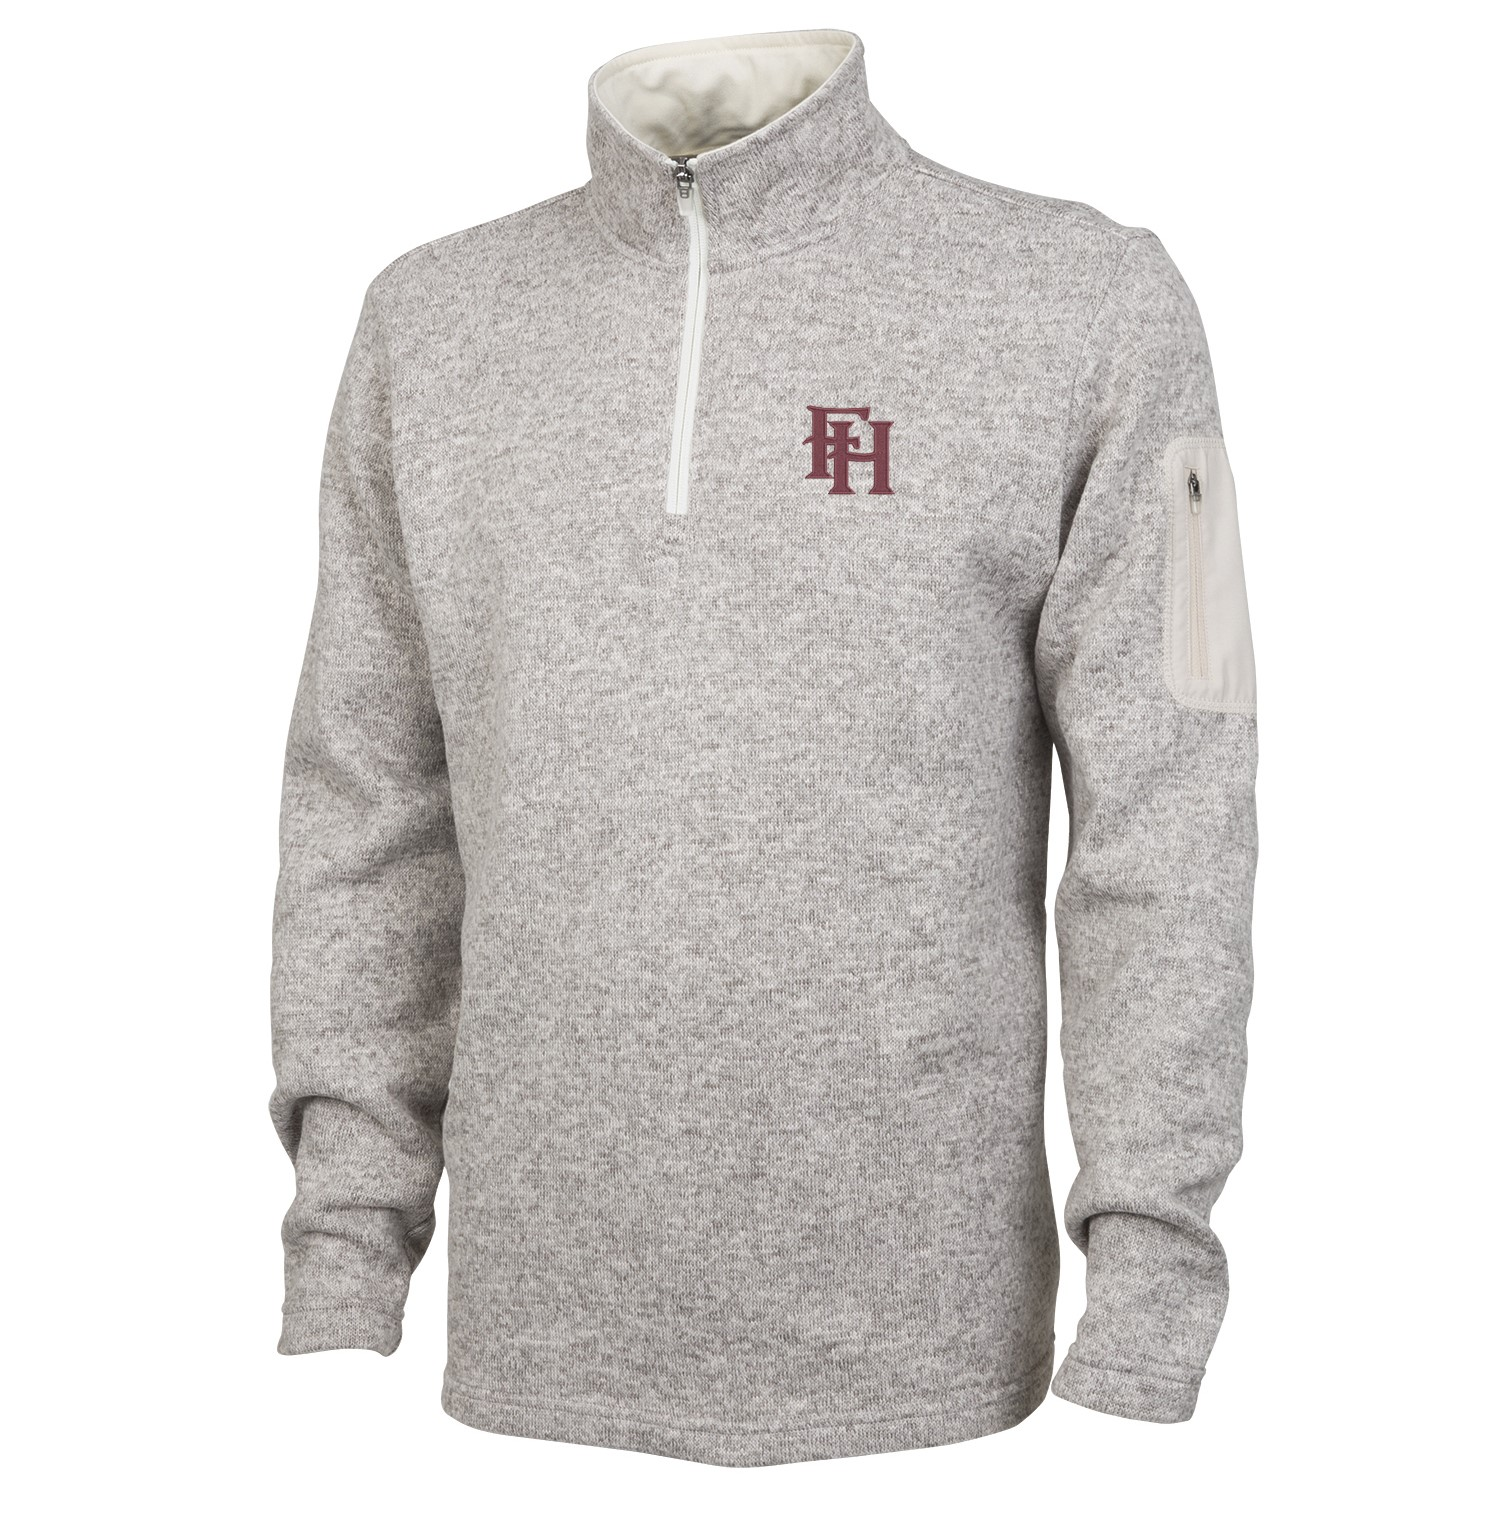 Men's Heathered Fleece Pullover